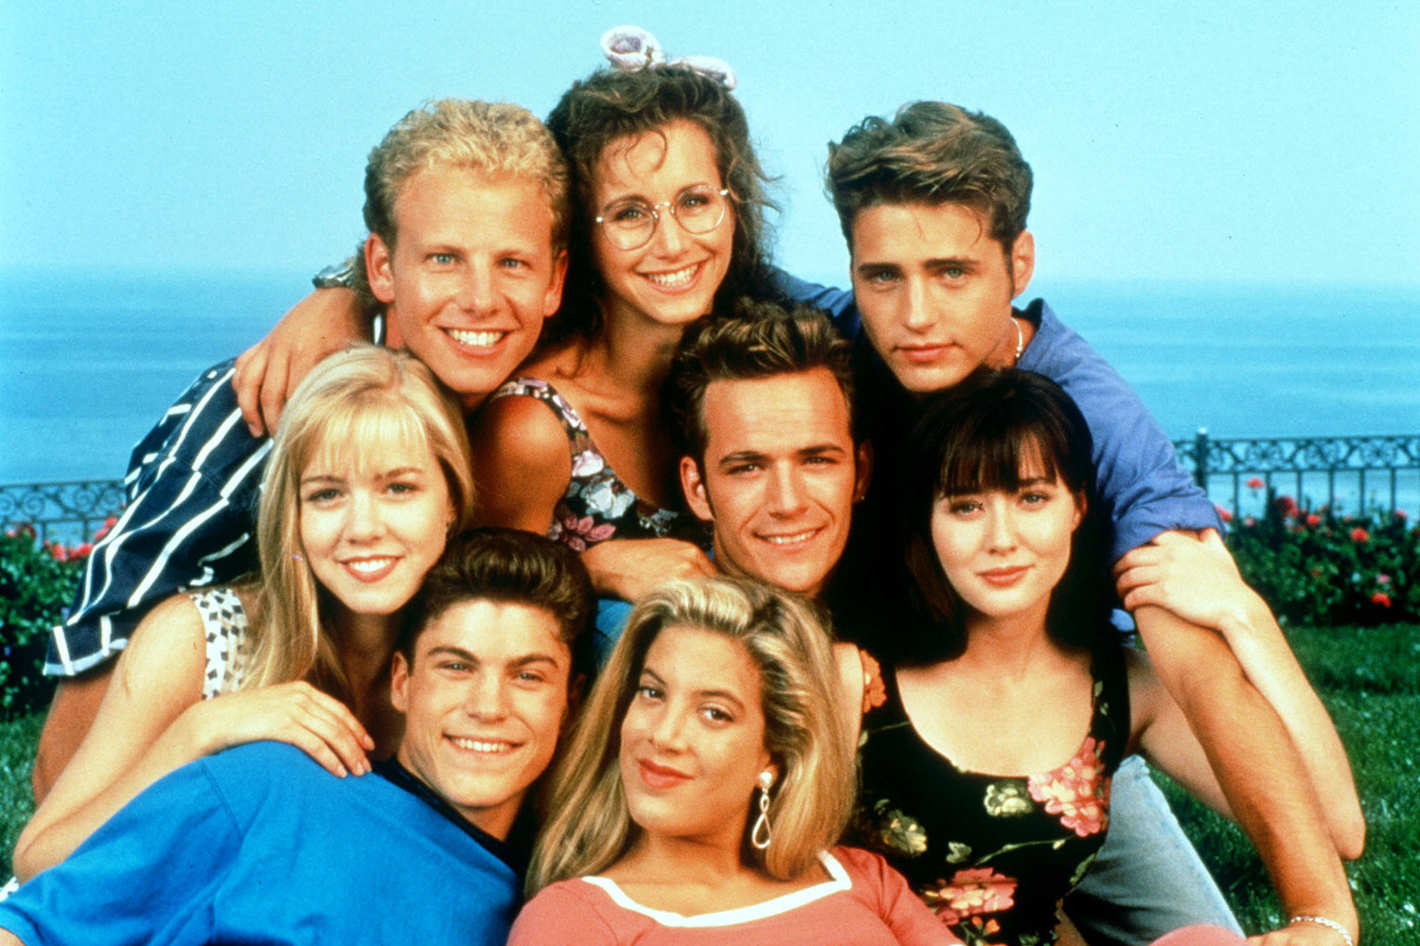 You Guys: A Beverly Hills, 90210' Movie is Coming toLifetime forecasting